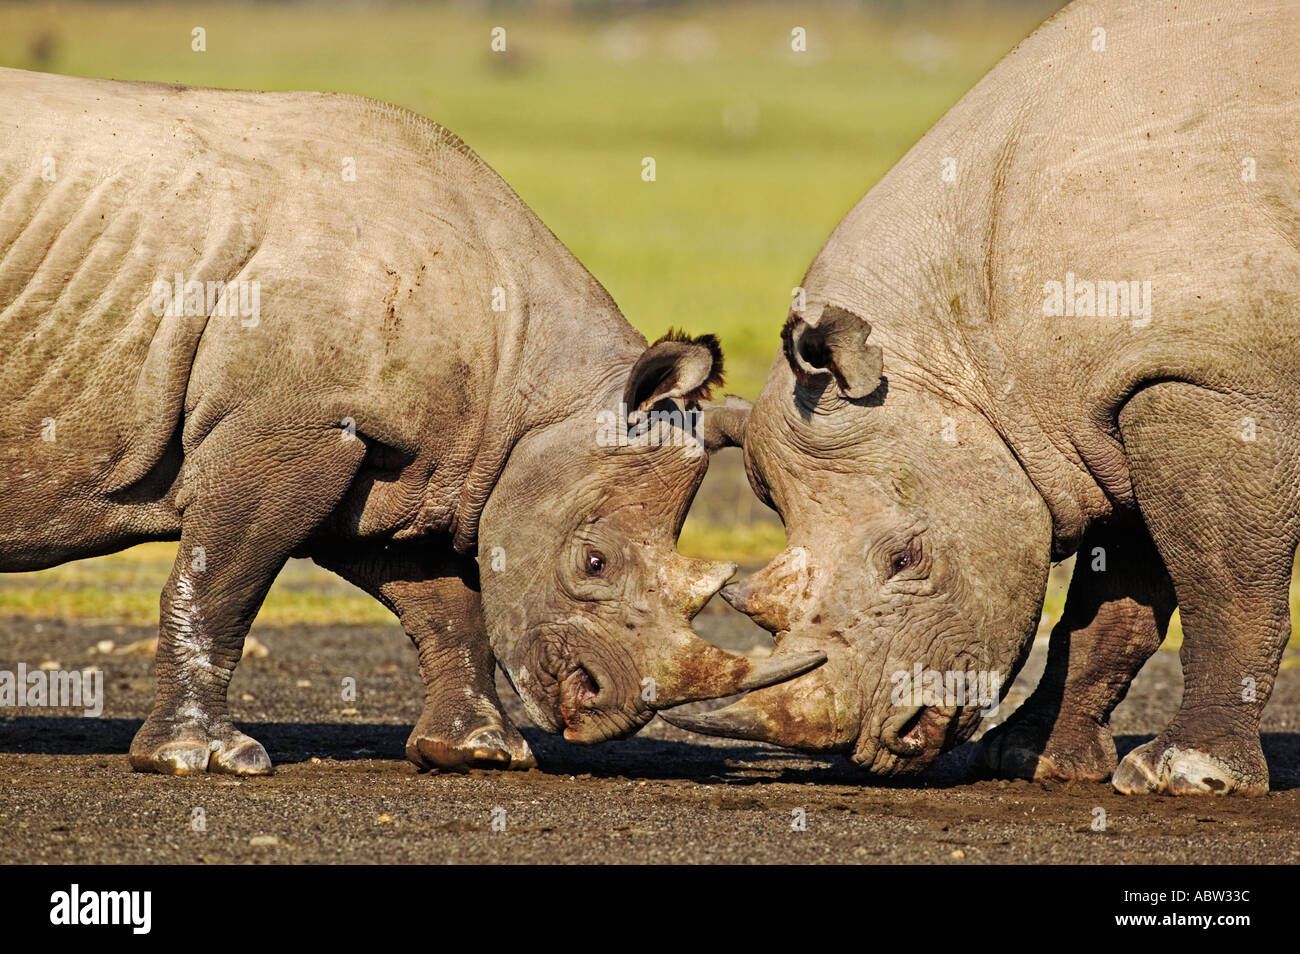 Black Rhinoceros Diceros bicornis Sub adult and adult bull interact Lake Nakuru National Park Kenya - Stock Image